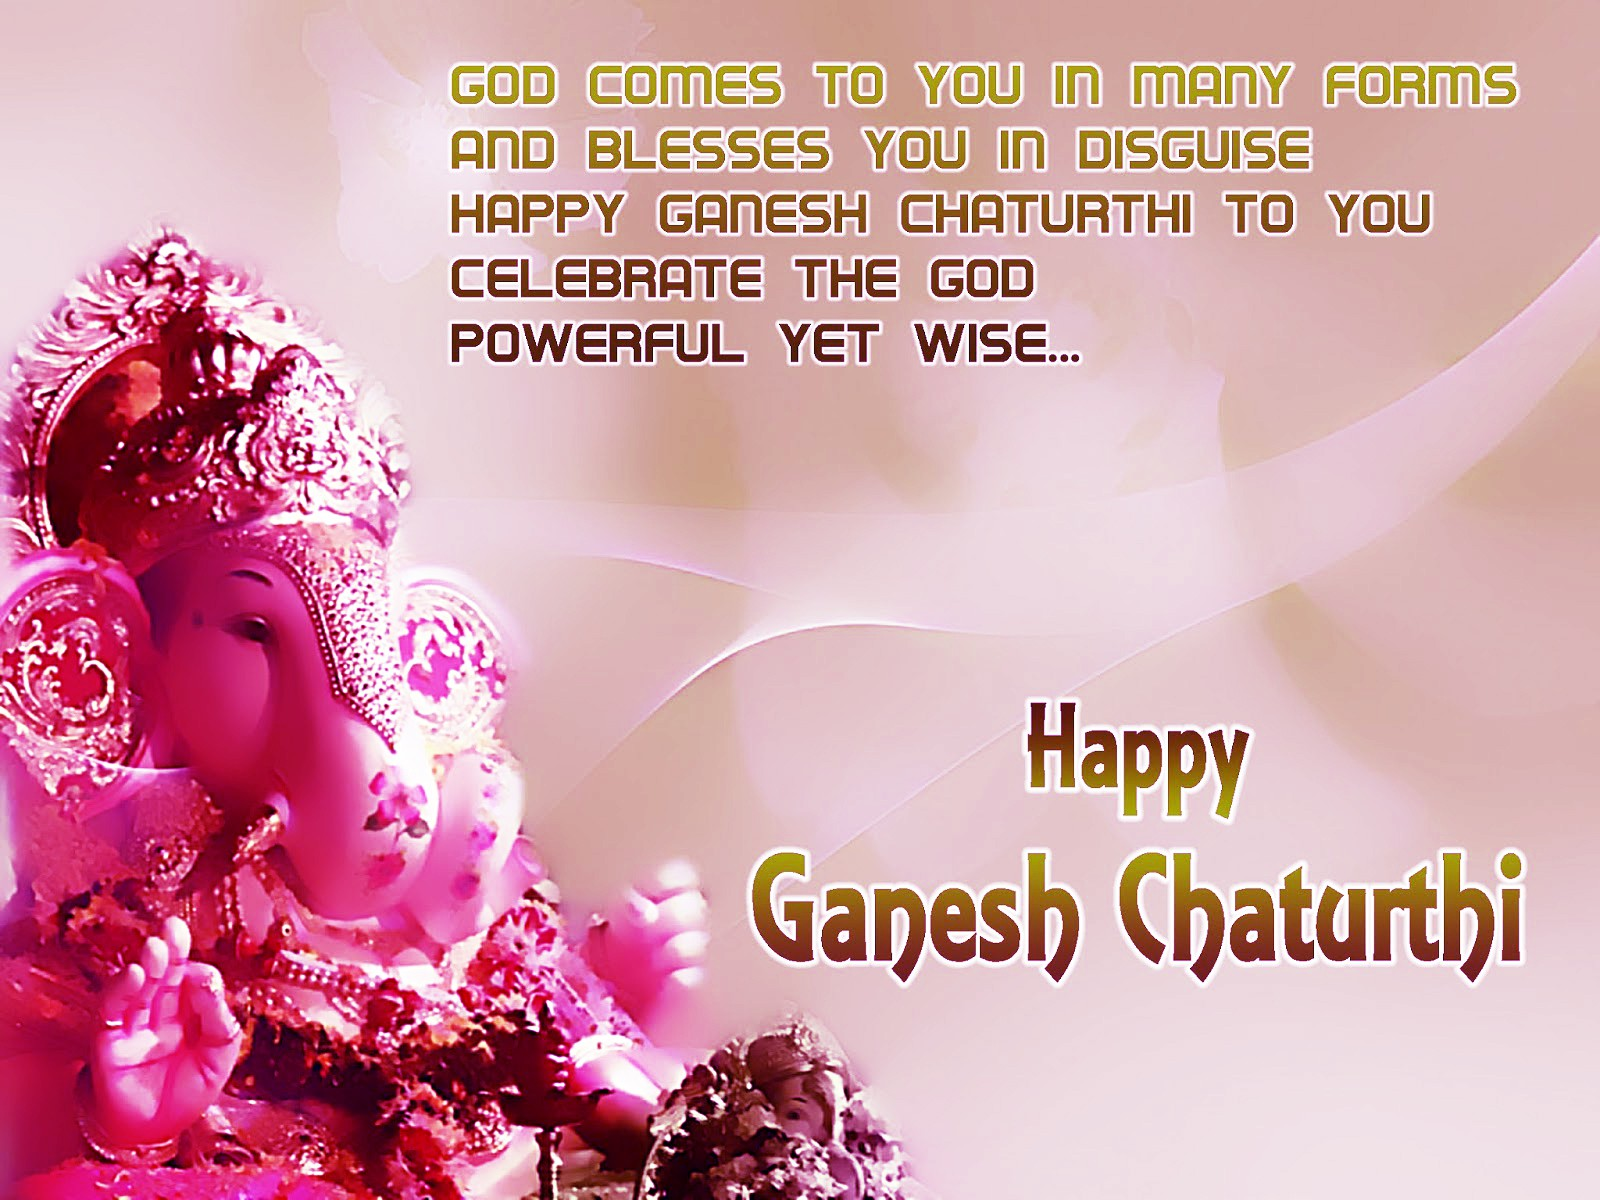 Happy Ganesh Chaturthi Greetings Cards Images Photos Quotes in English